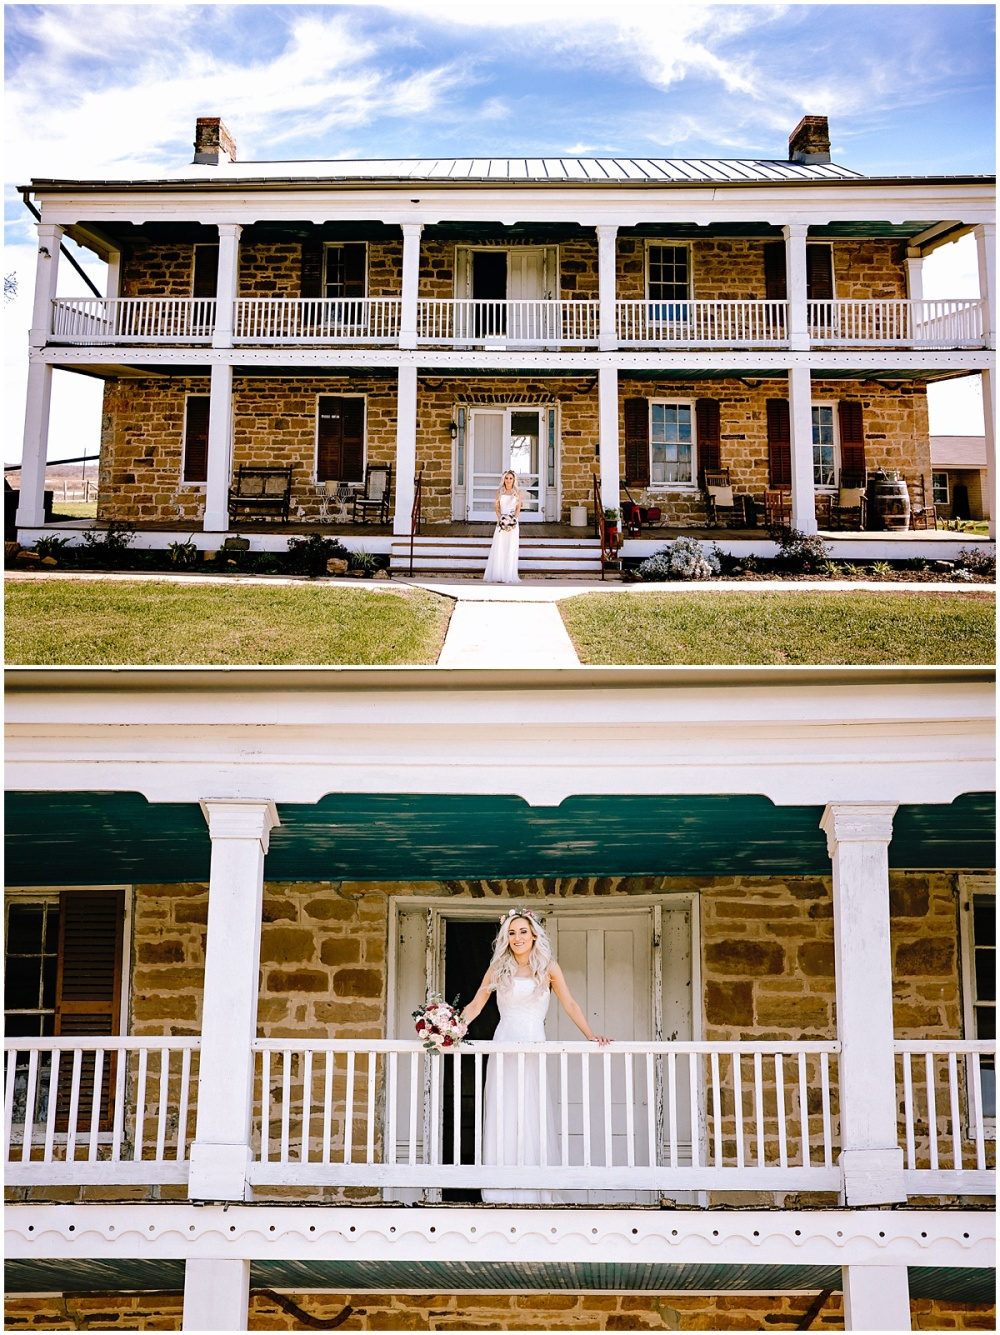 Bridal-Session-Whitehall-Polley-Mansion-LaVernia-Texas-Carly-Barton-Photography_0002.jpg